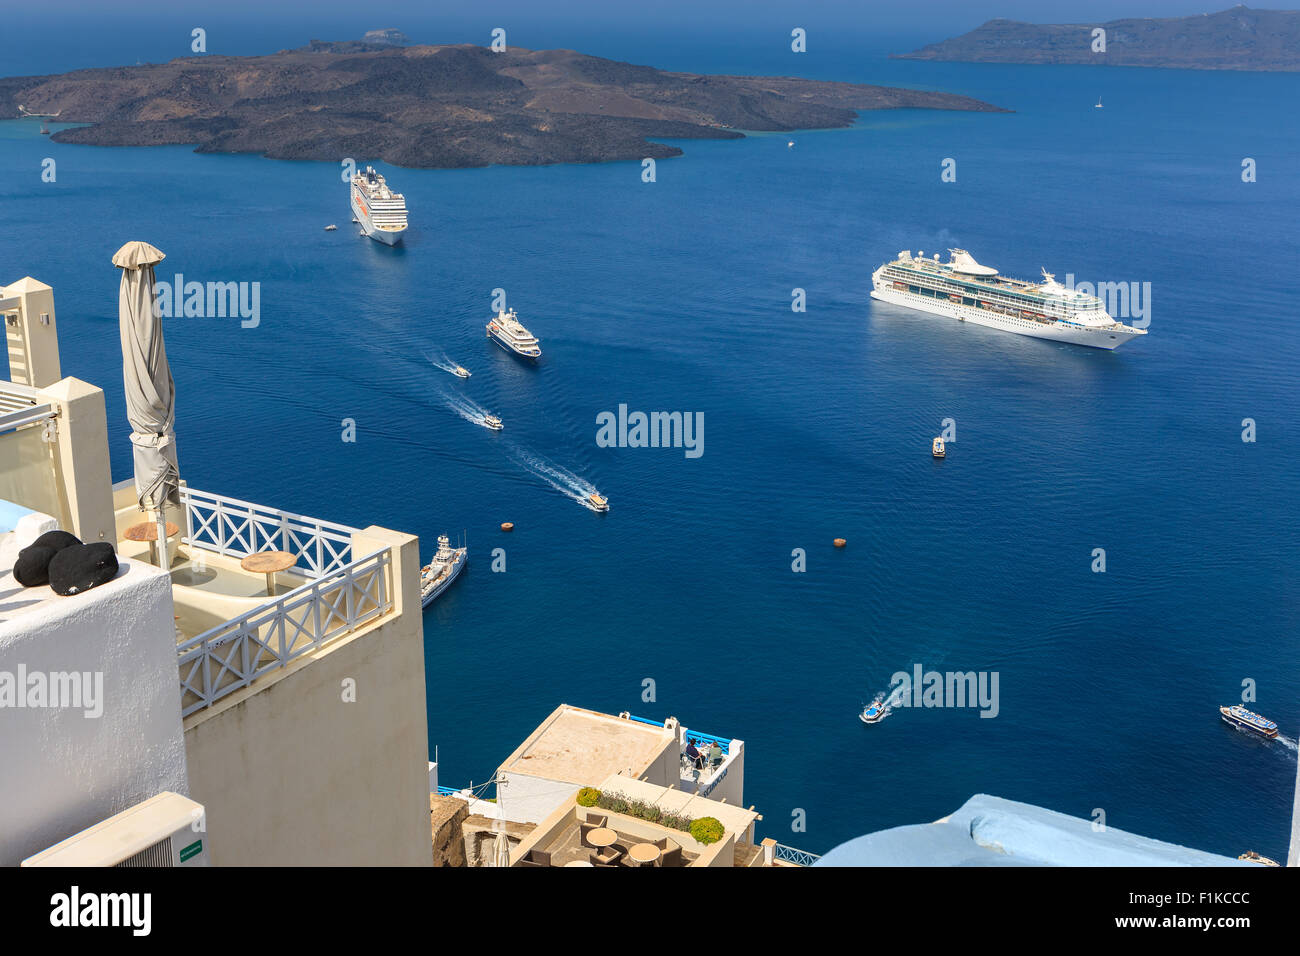 Cruise ships near Santorini, one of the Cyclades islands in Aegean Sea, Greece. - Stock Image